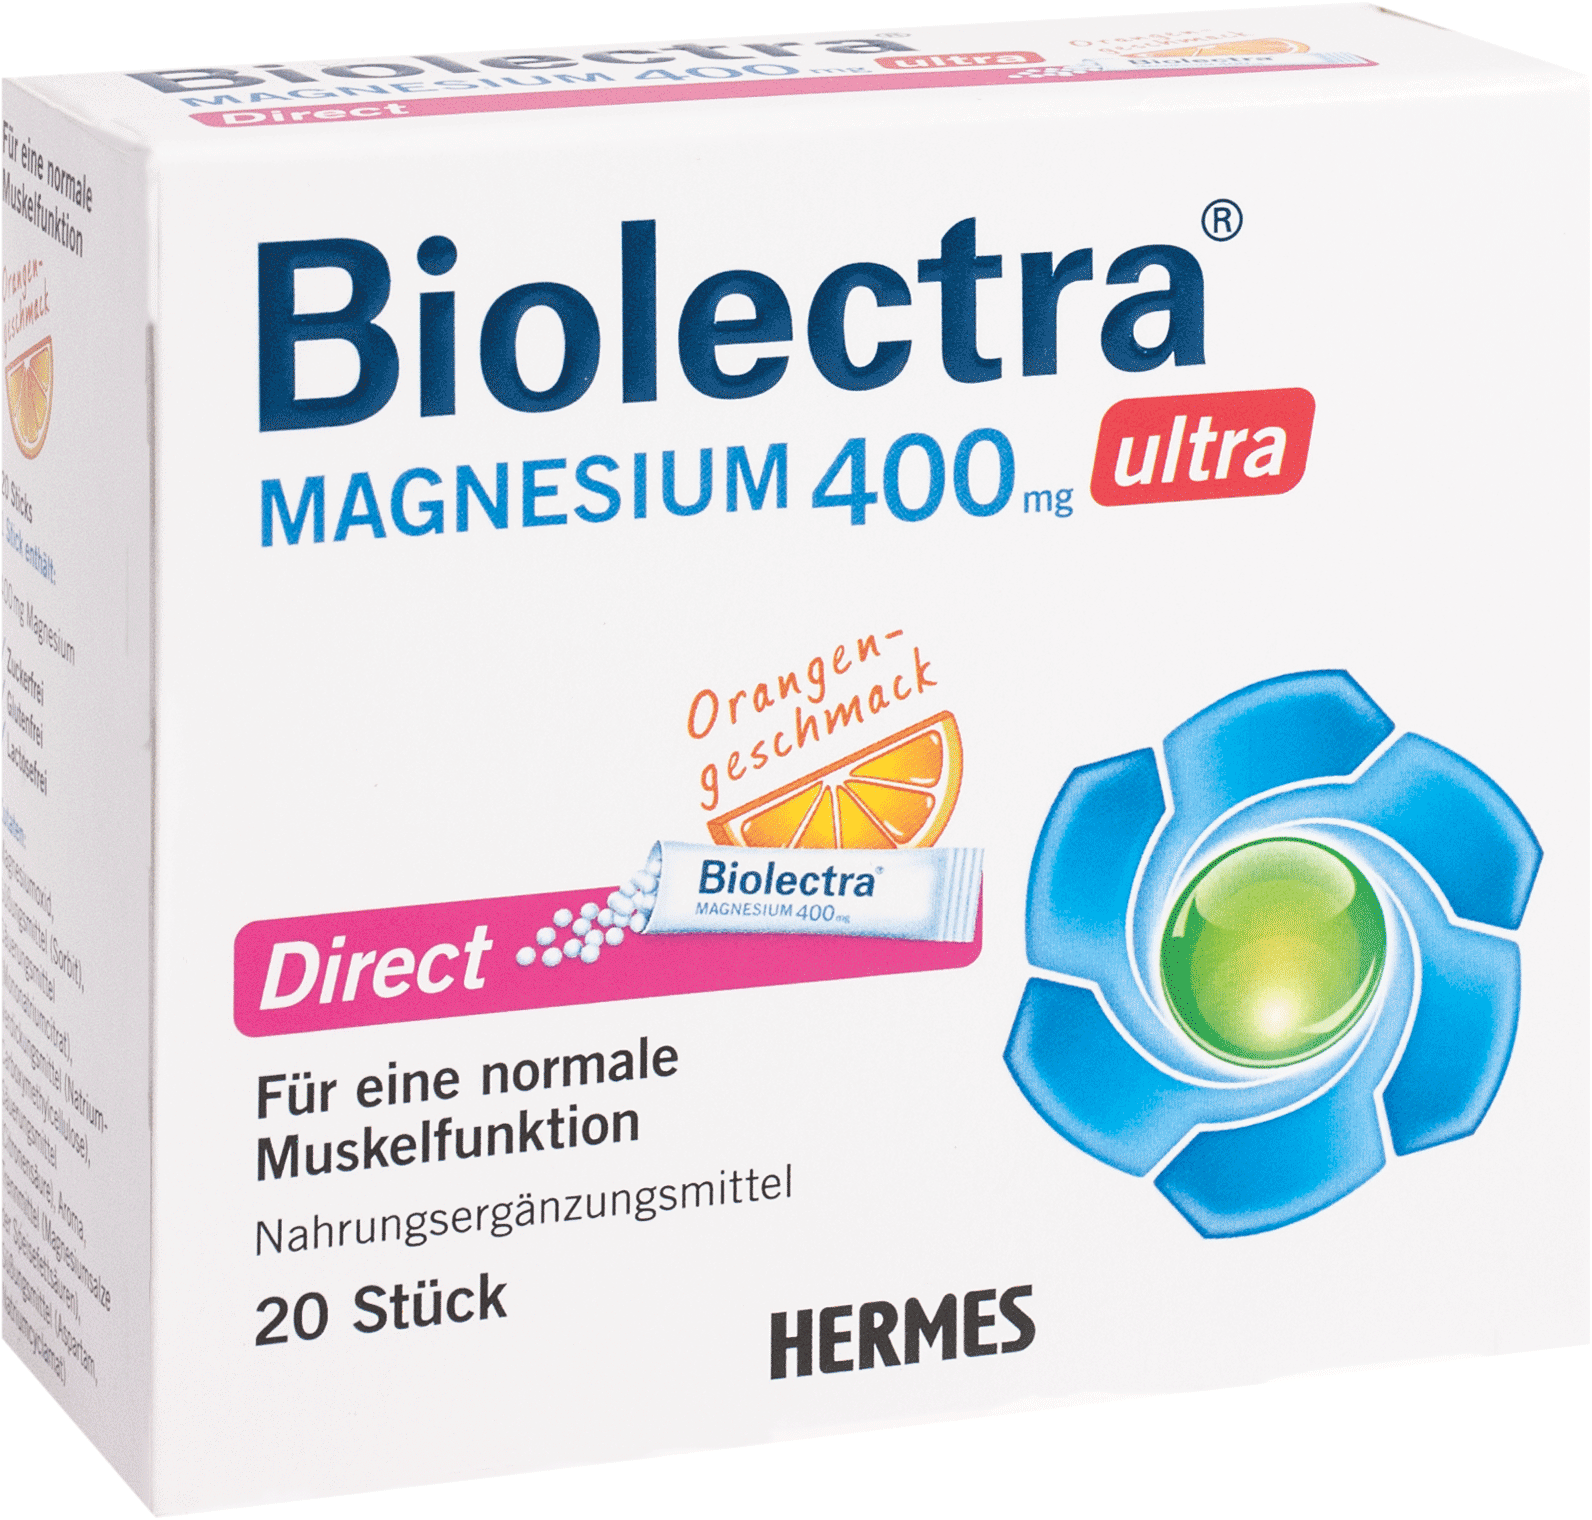 Biolectra Magnesium 400mg Ultra Direct Orange